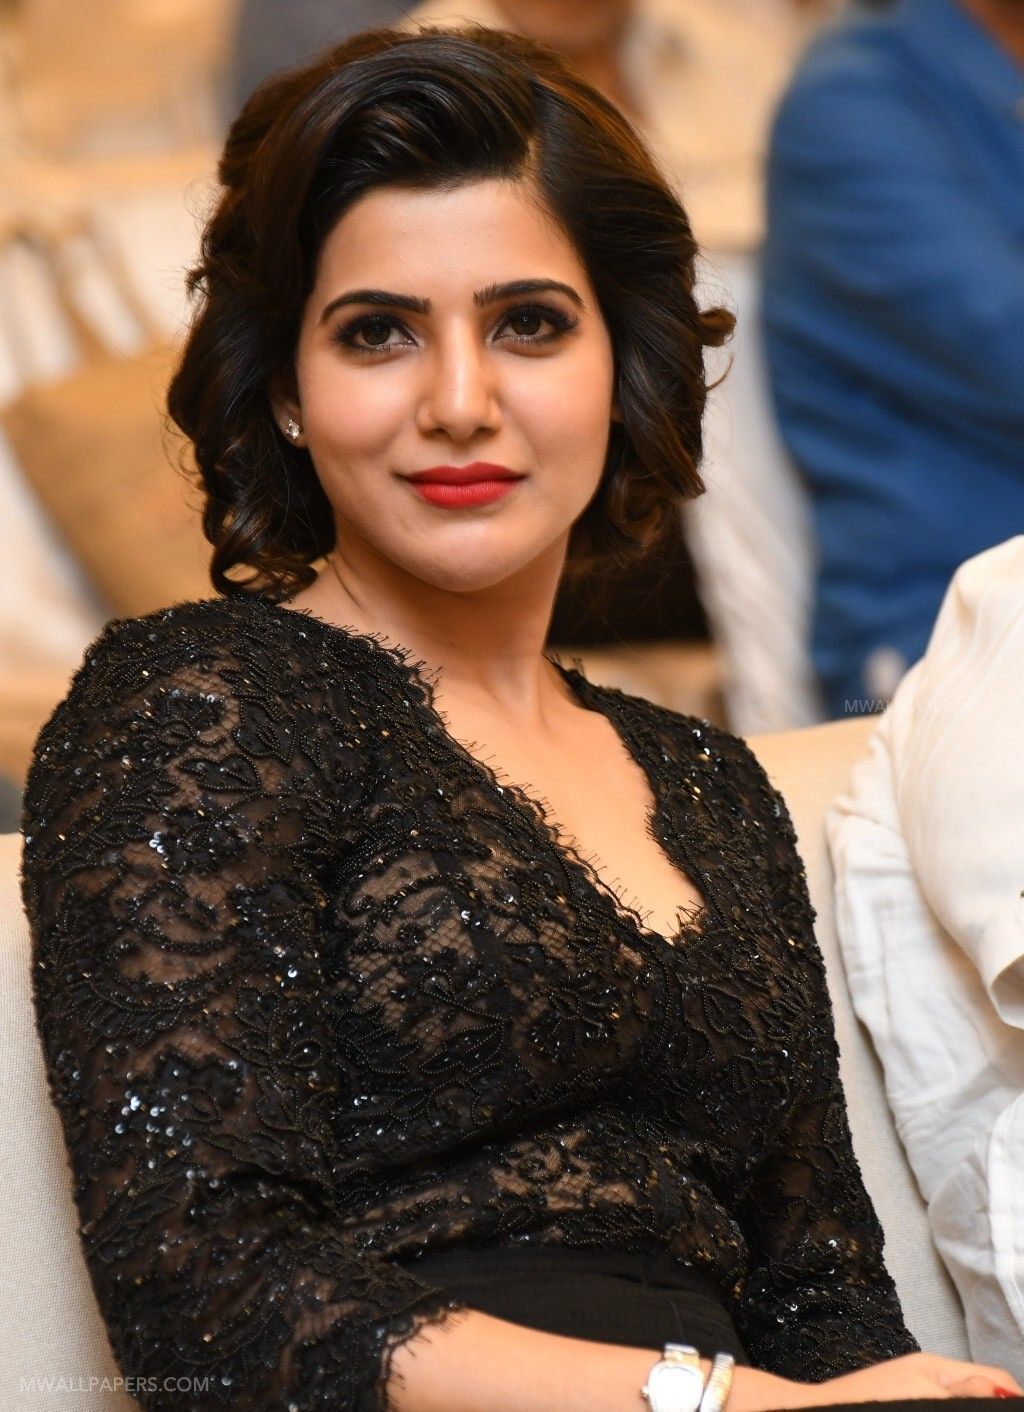 Samantha Beautiful HD Photoshoot Stills (1080p) (16363) - Samantha